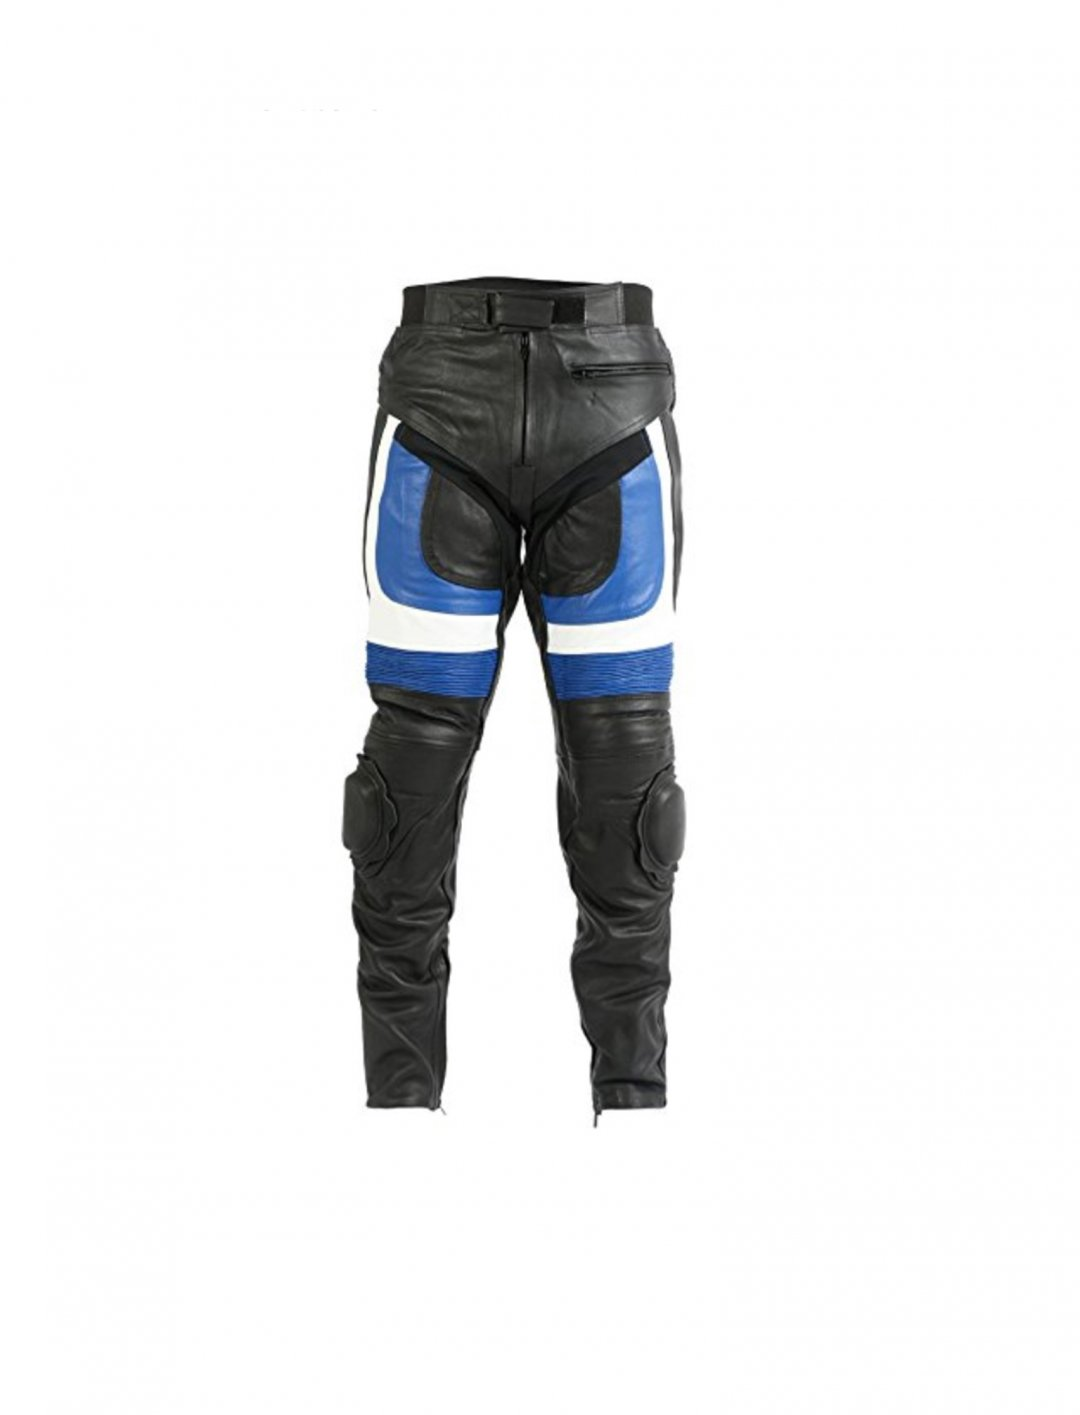 Turin Motorcycle Trousers Clothing Turin